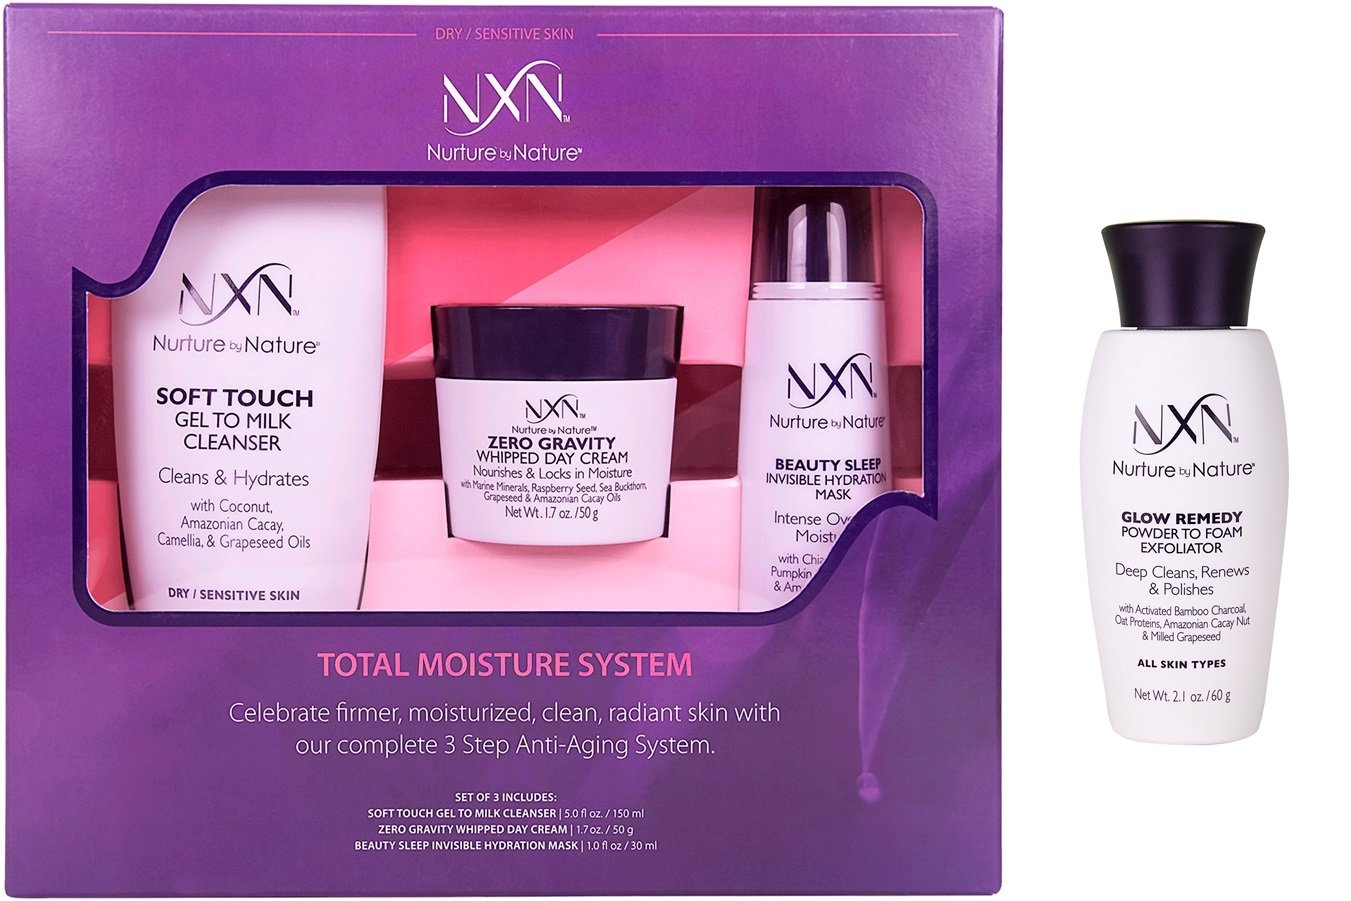 NxN Total Moisture System for Dry Sensitive Skin Review